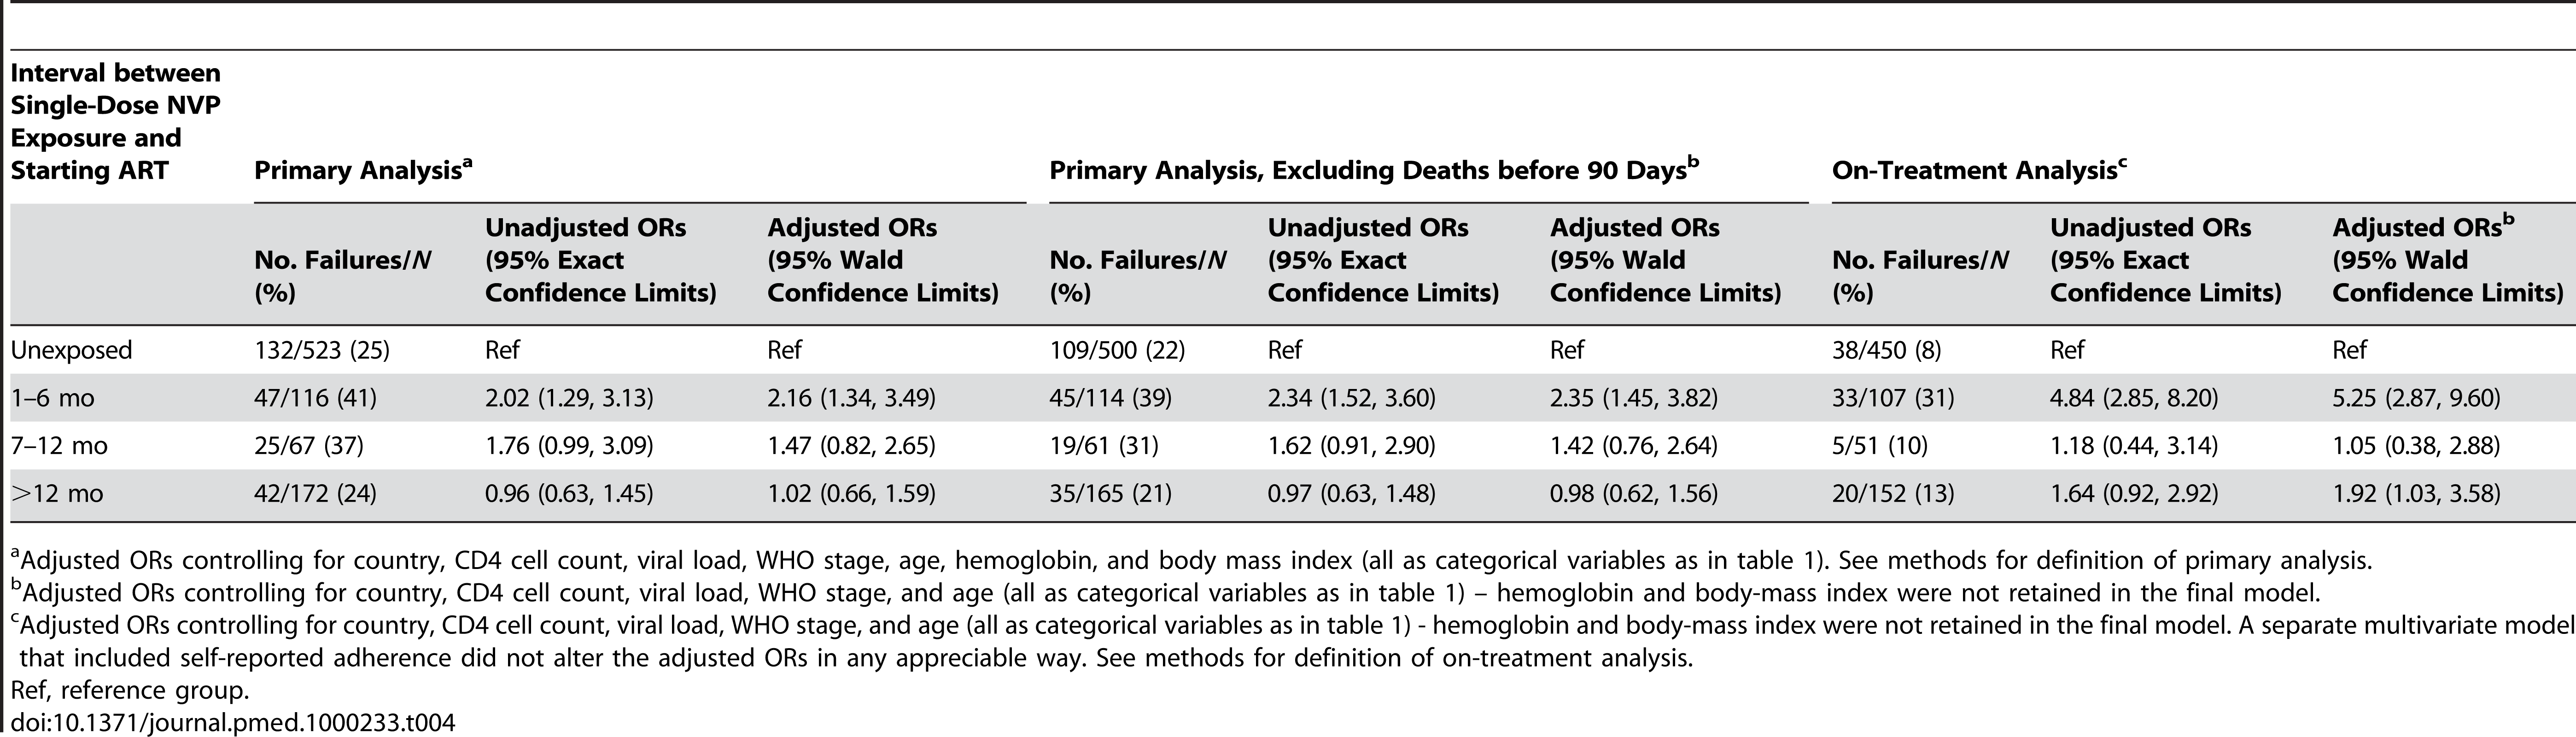 Relationship between exposure interval and treatment failure at 48 weeks in the NNRTI Response Study—Zambia, Kenya, Thailand (2005–2008).